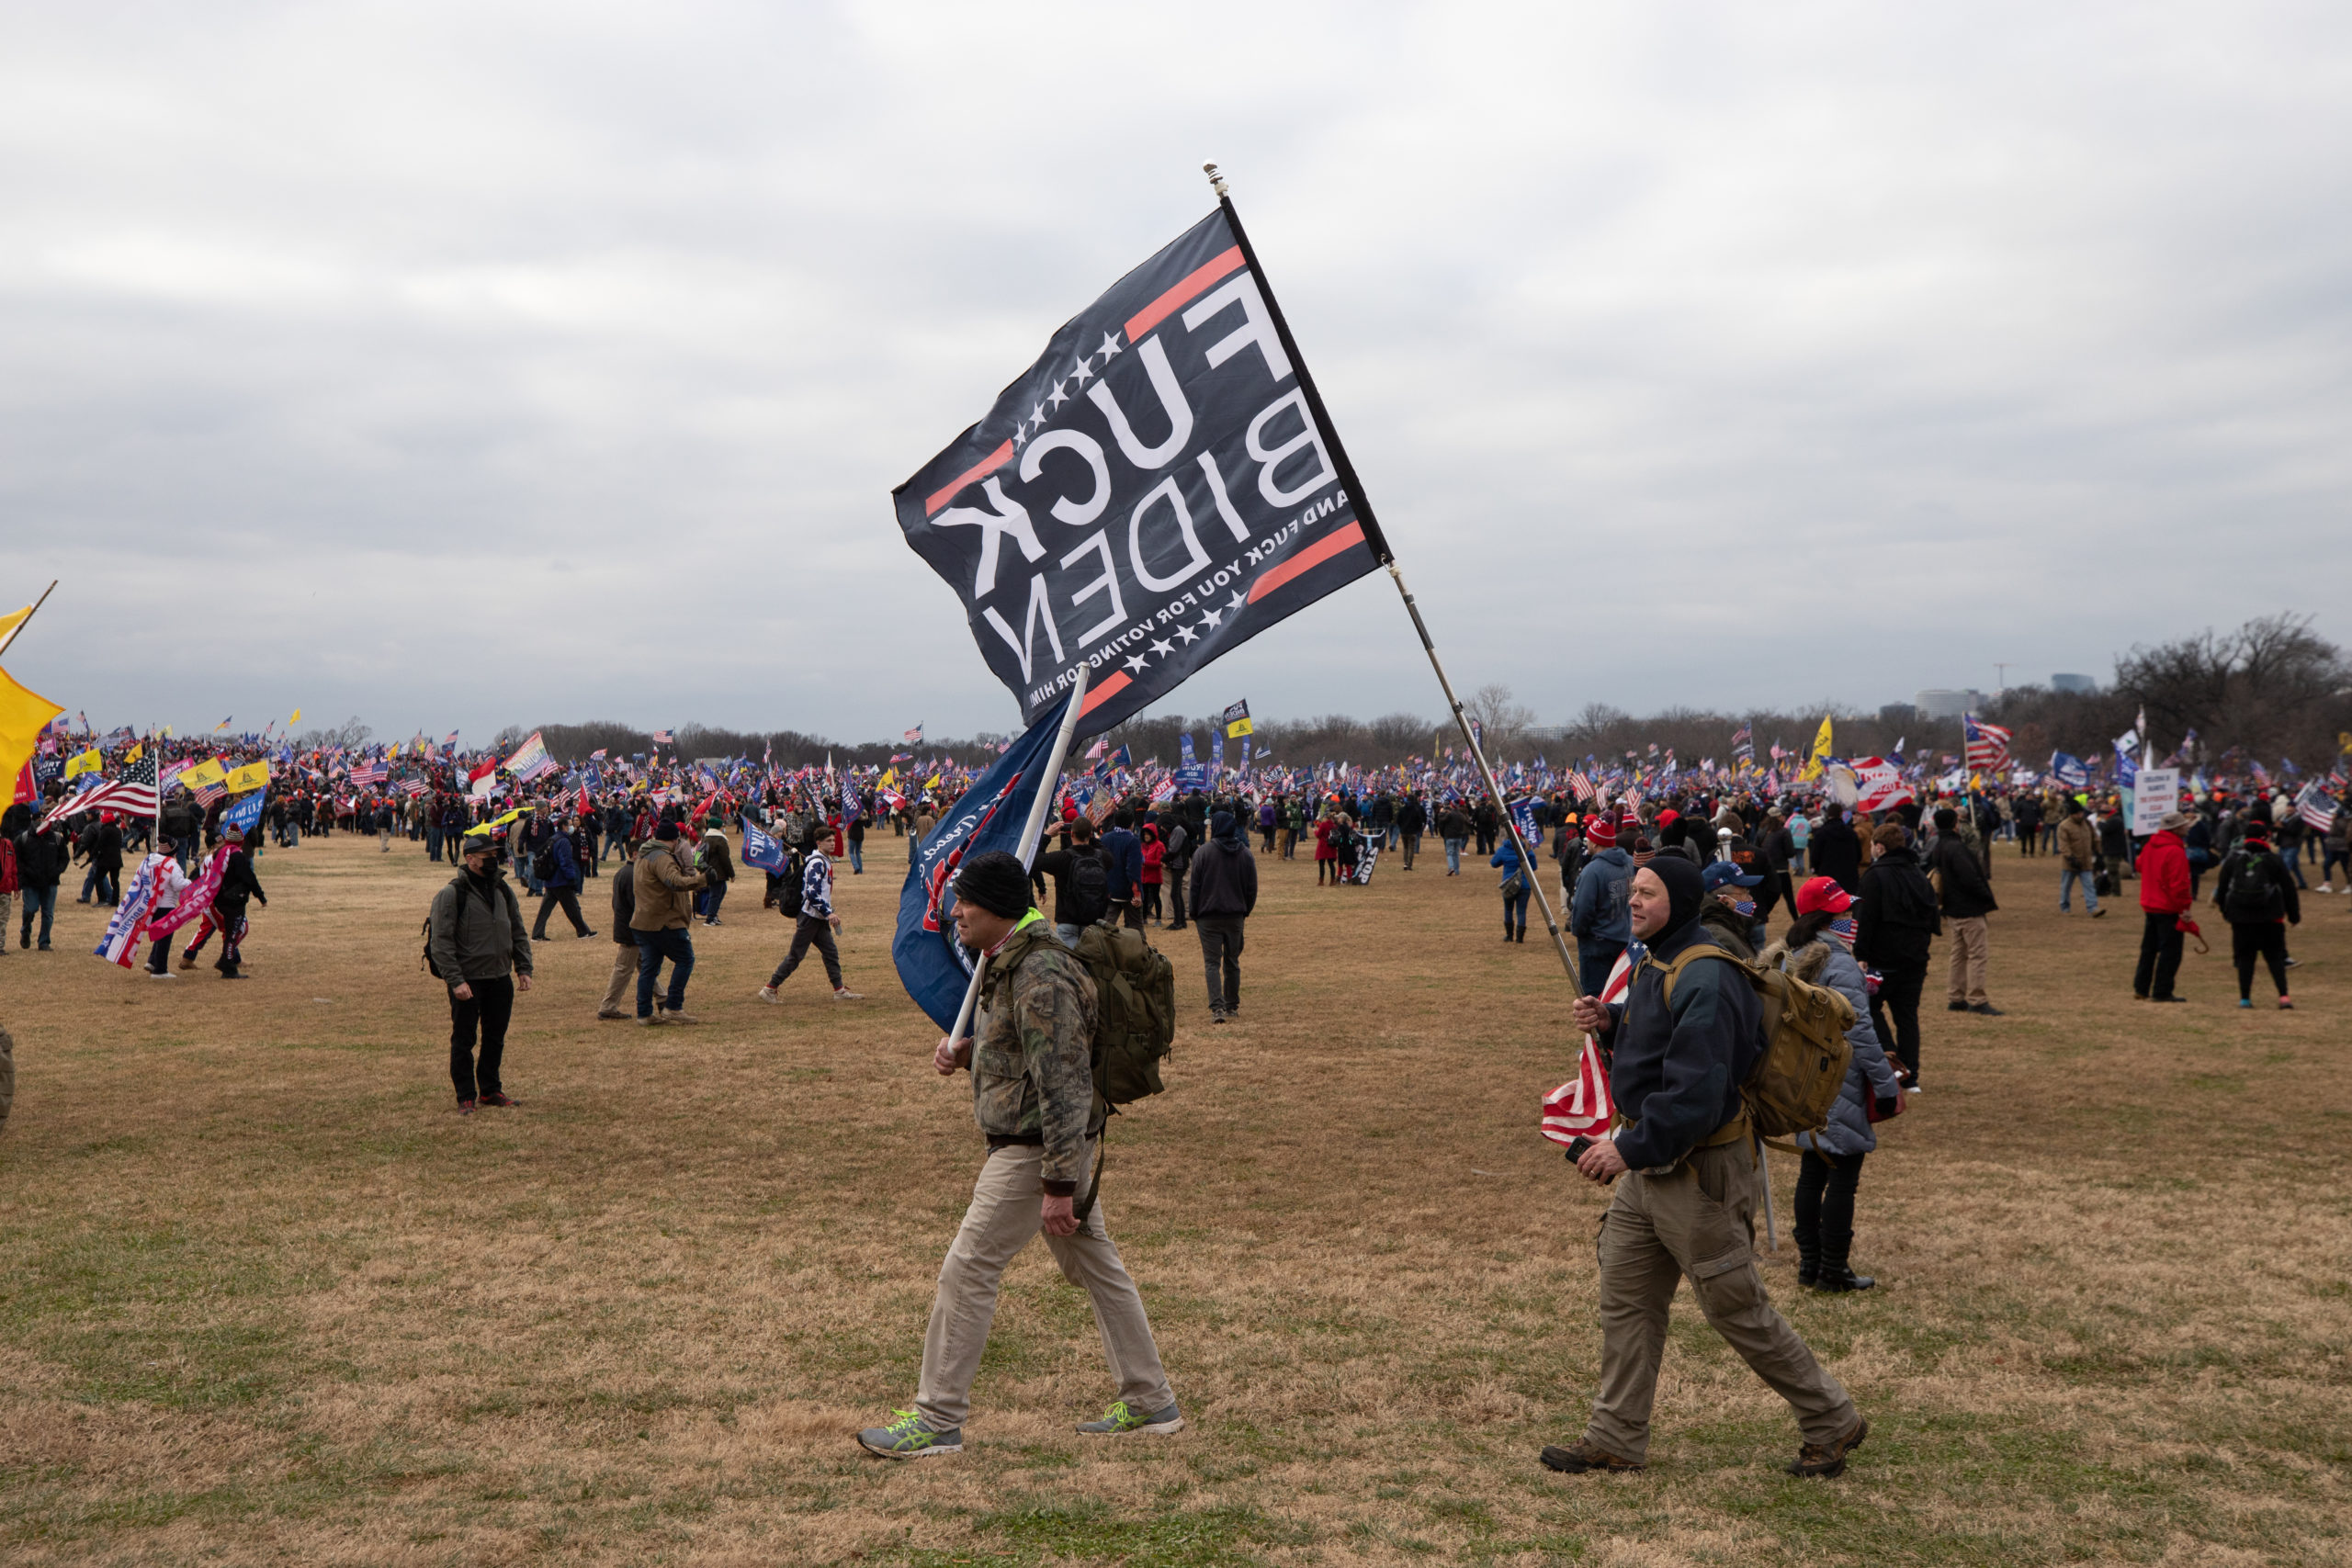 Pro-President Donald Trump supporters gathered at the National Mall for Trump's speech in Washington, D.C. on Jan. 6, 2021. (Kaylee Greenlee – Daily Caller News Foundation)